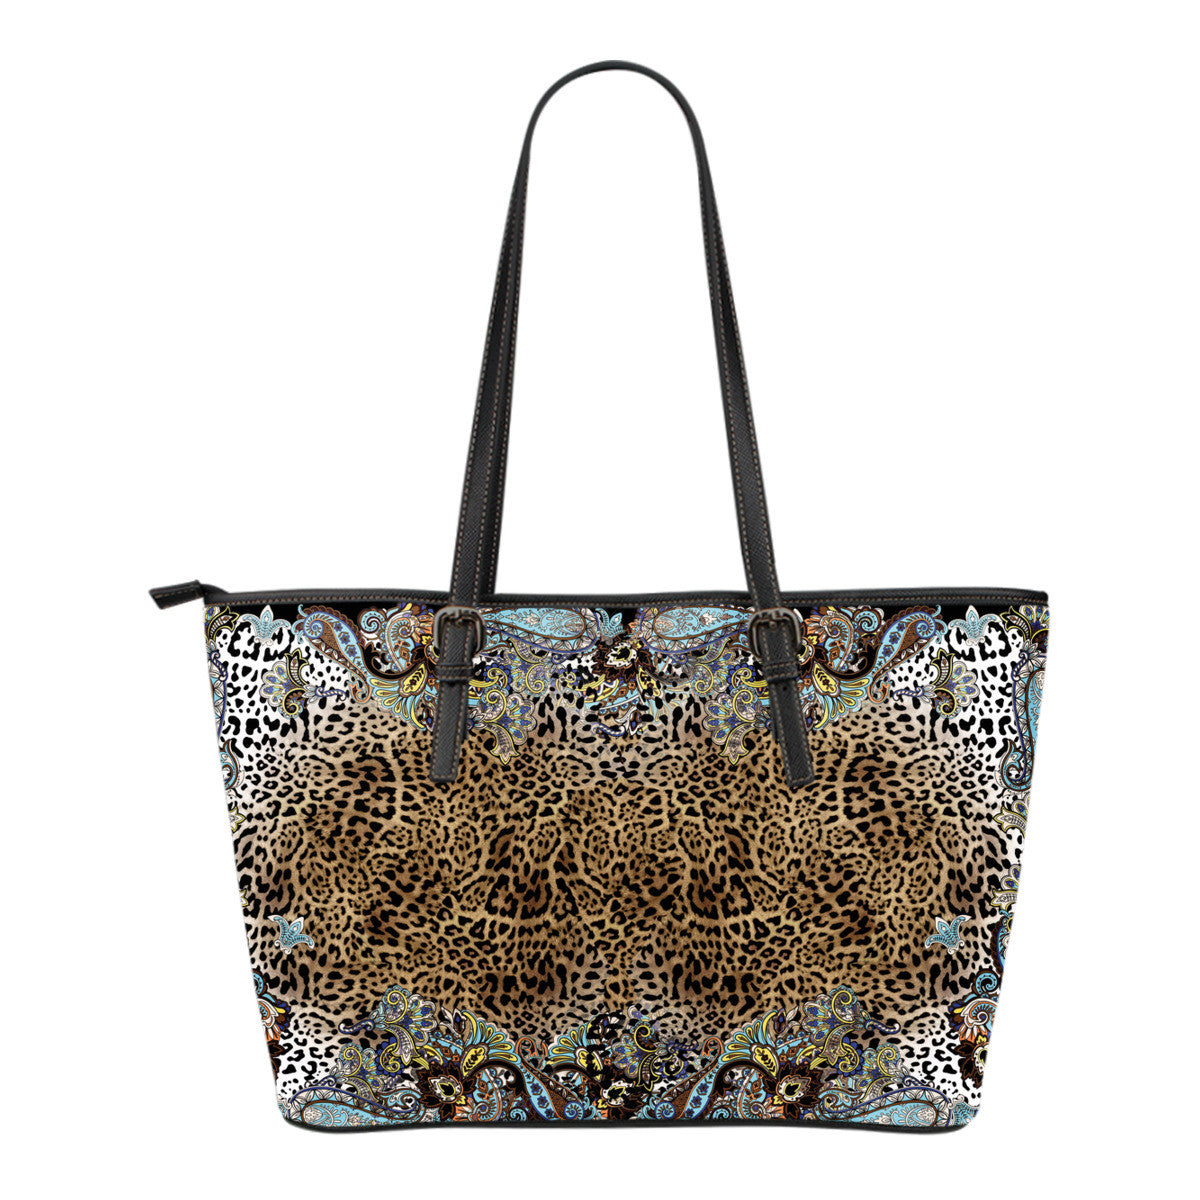 Tiger Lily Small Leather Tote Bag